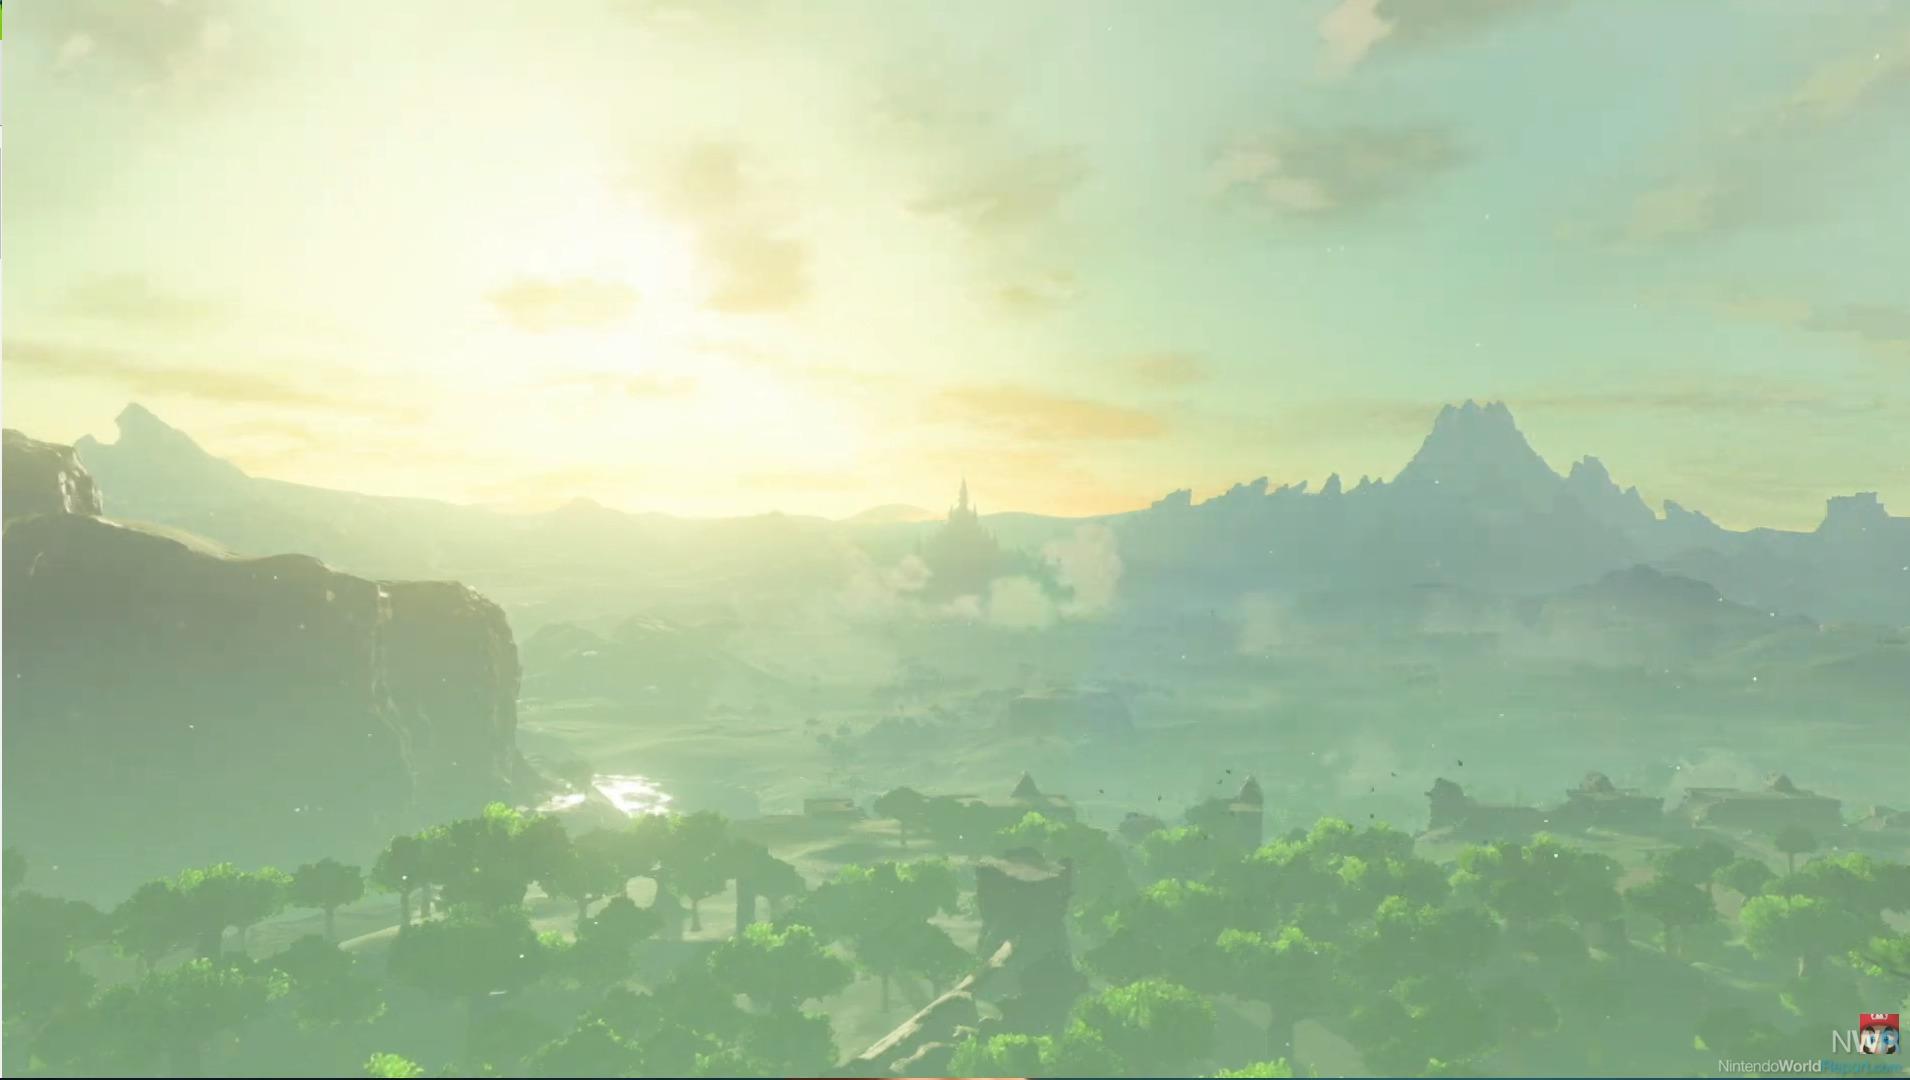 Zelda: Breath of the Wild sequel in the works